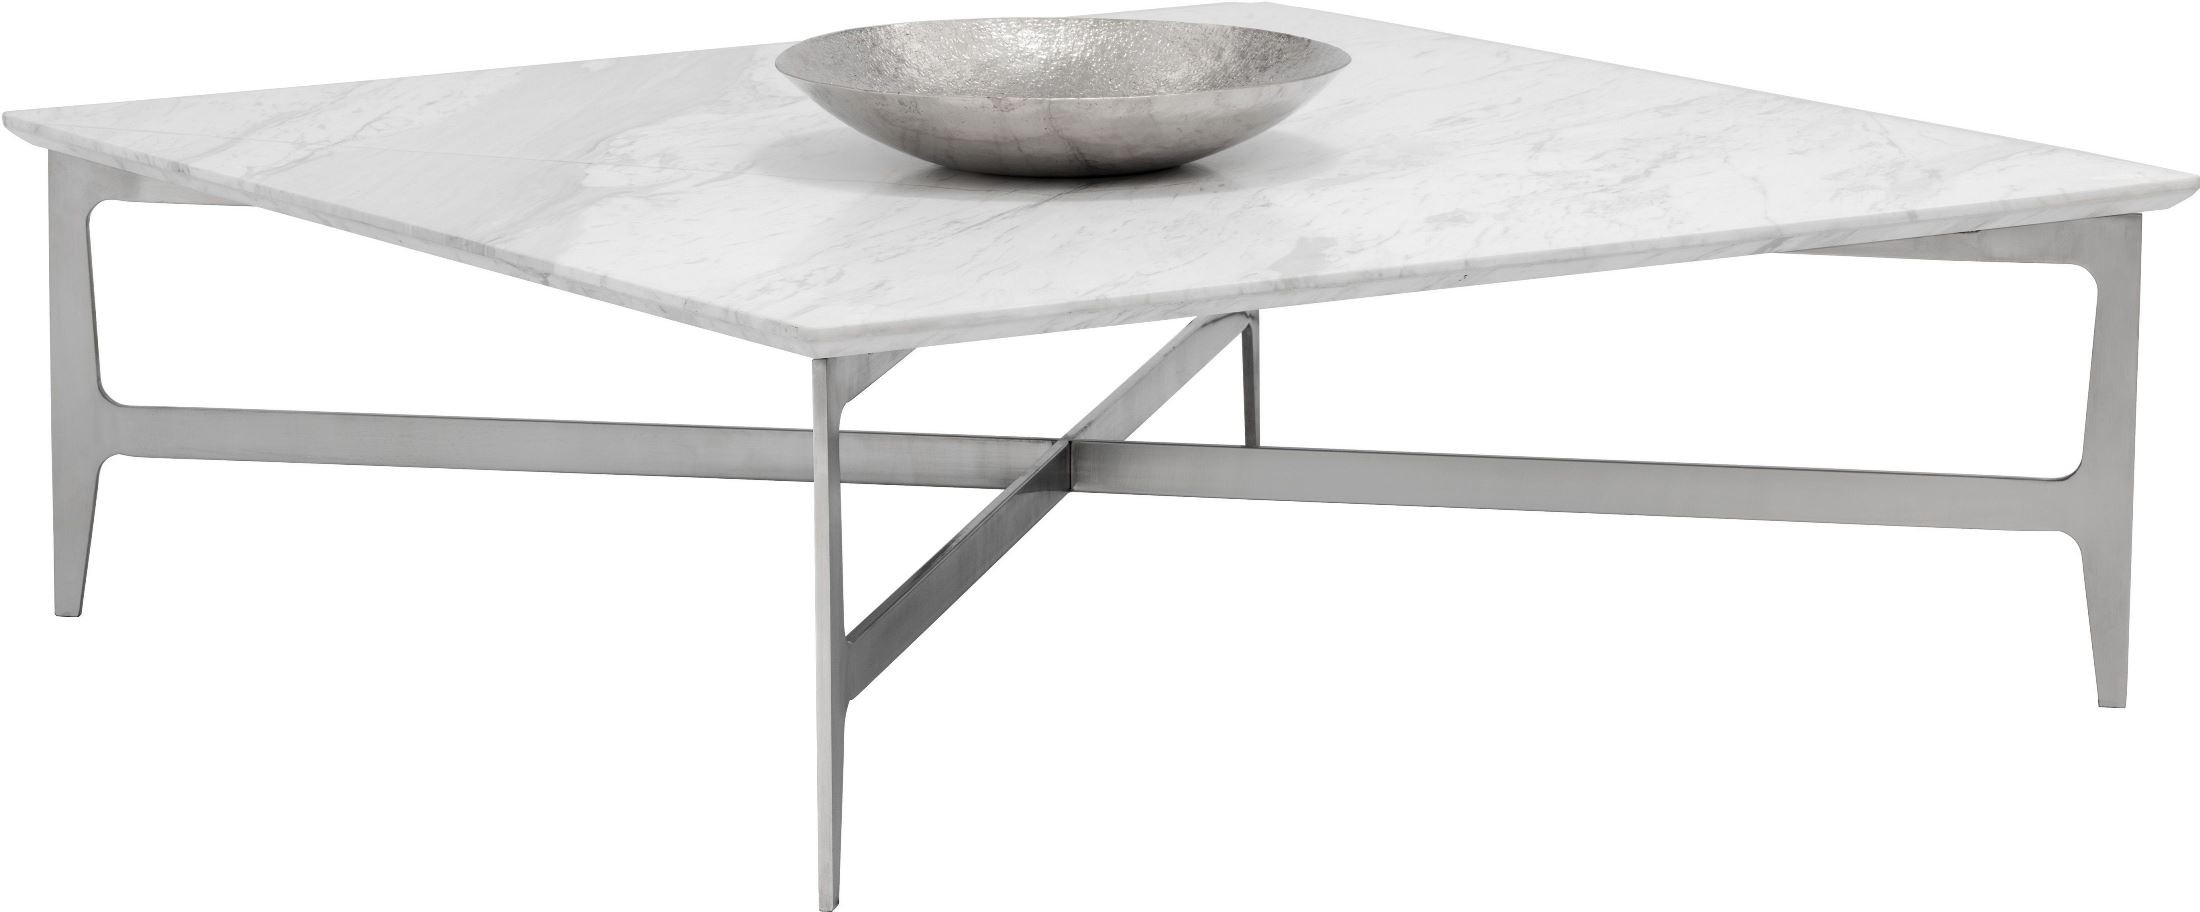 Clearwater white marble square coffee table 101503 White marble coffee table